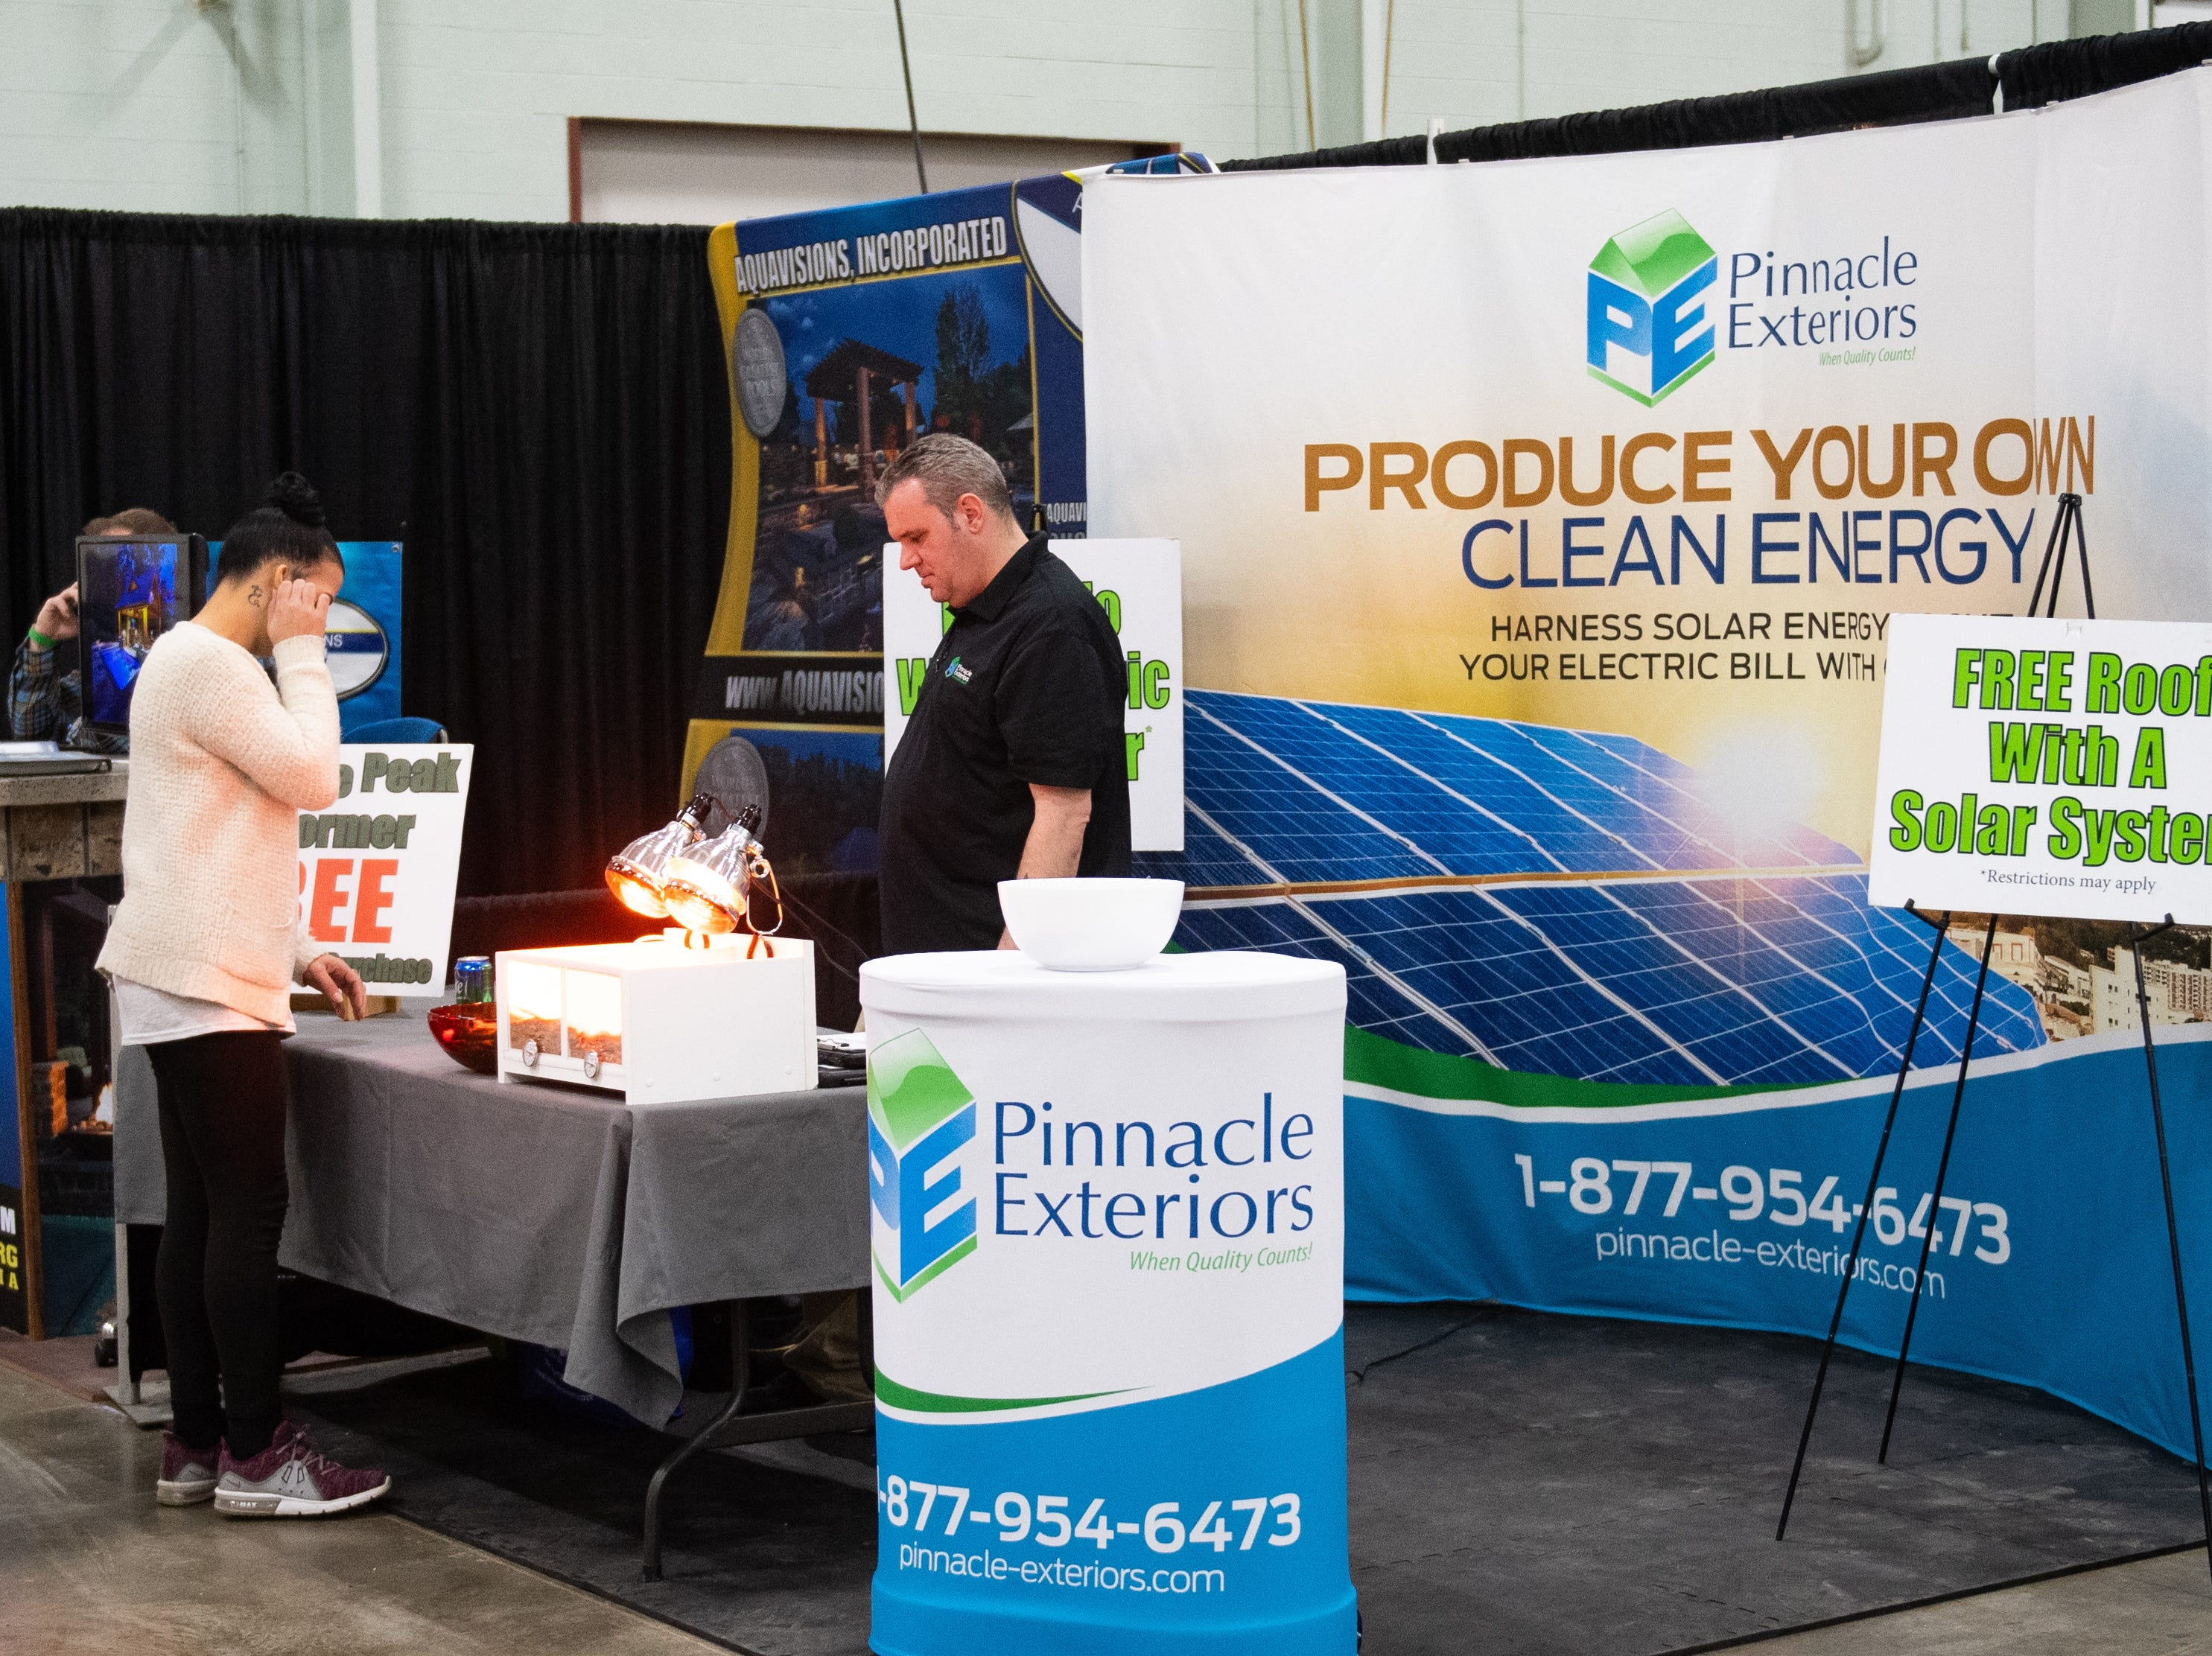 Pinnacle Exteriors has a booth at the 2019 Home & Garden Show, February 8, 2019.